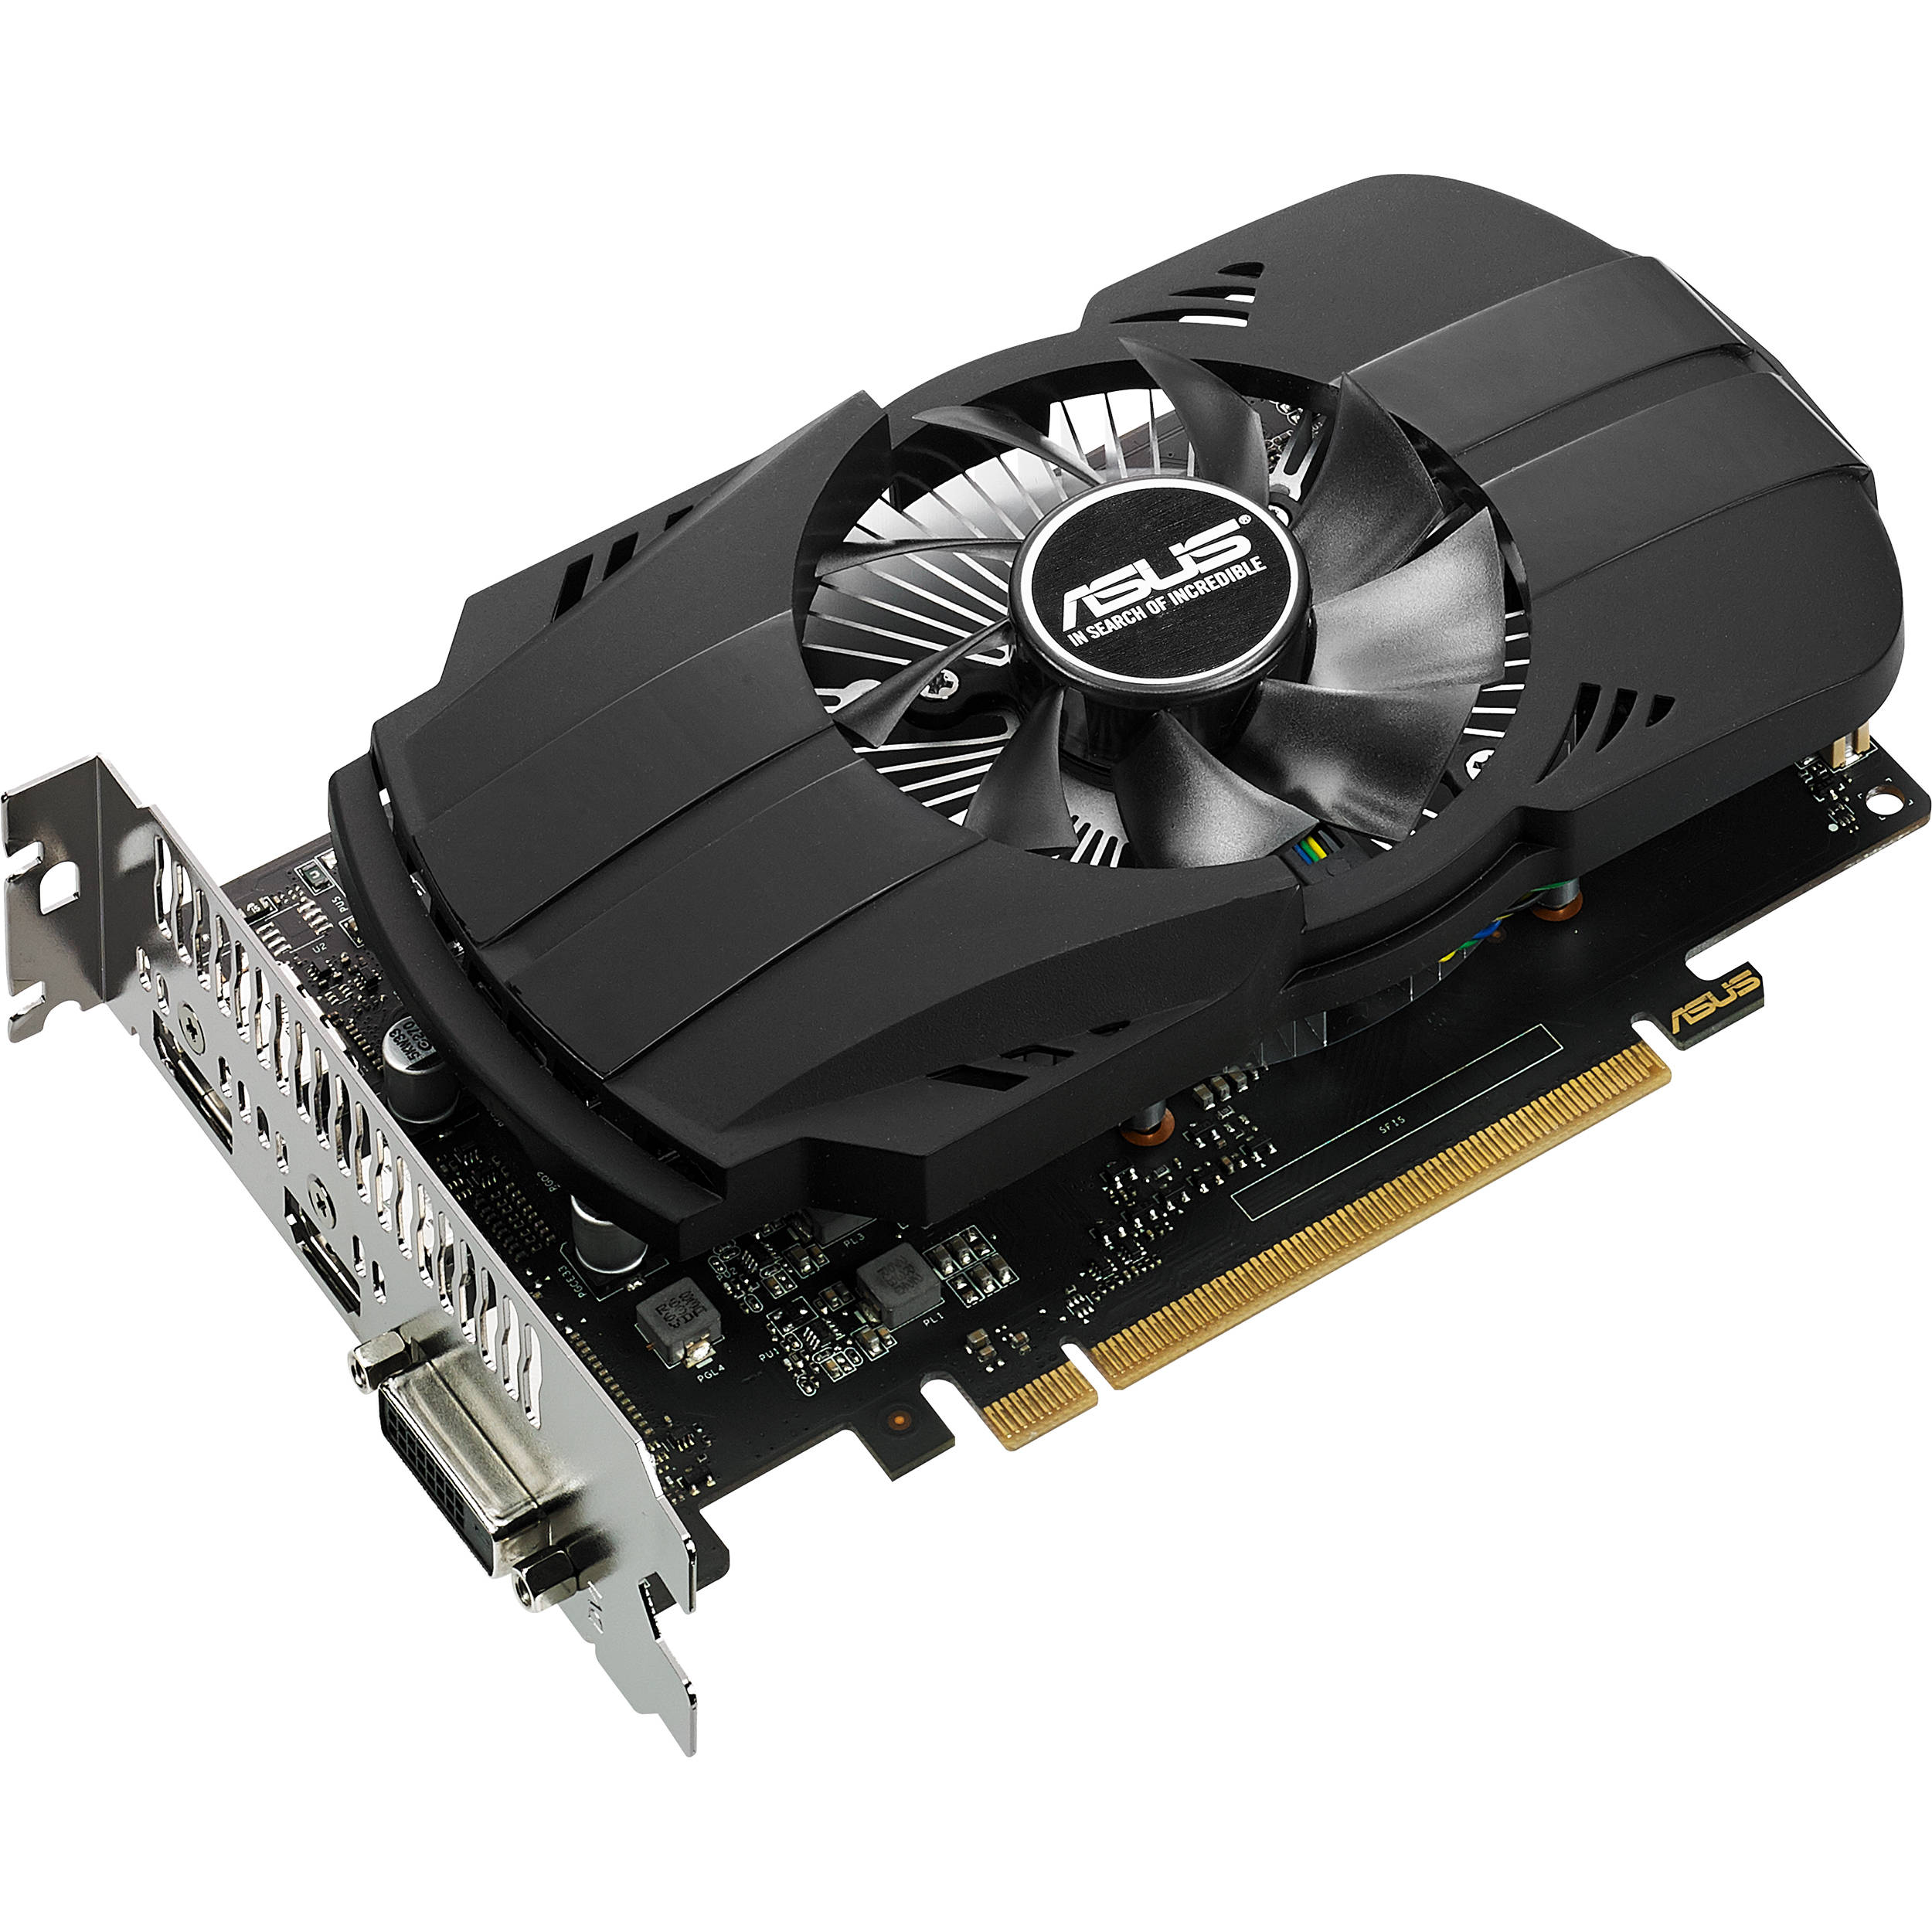 ASUS Phoenix GeForce GTX 1050 Ti Graphics Card